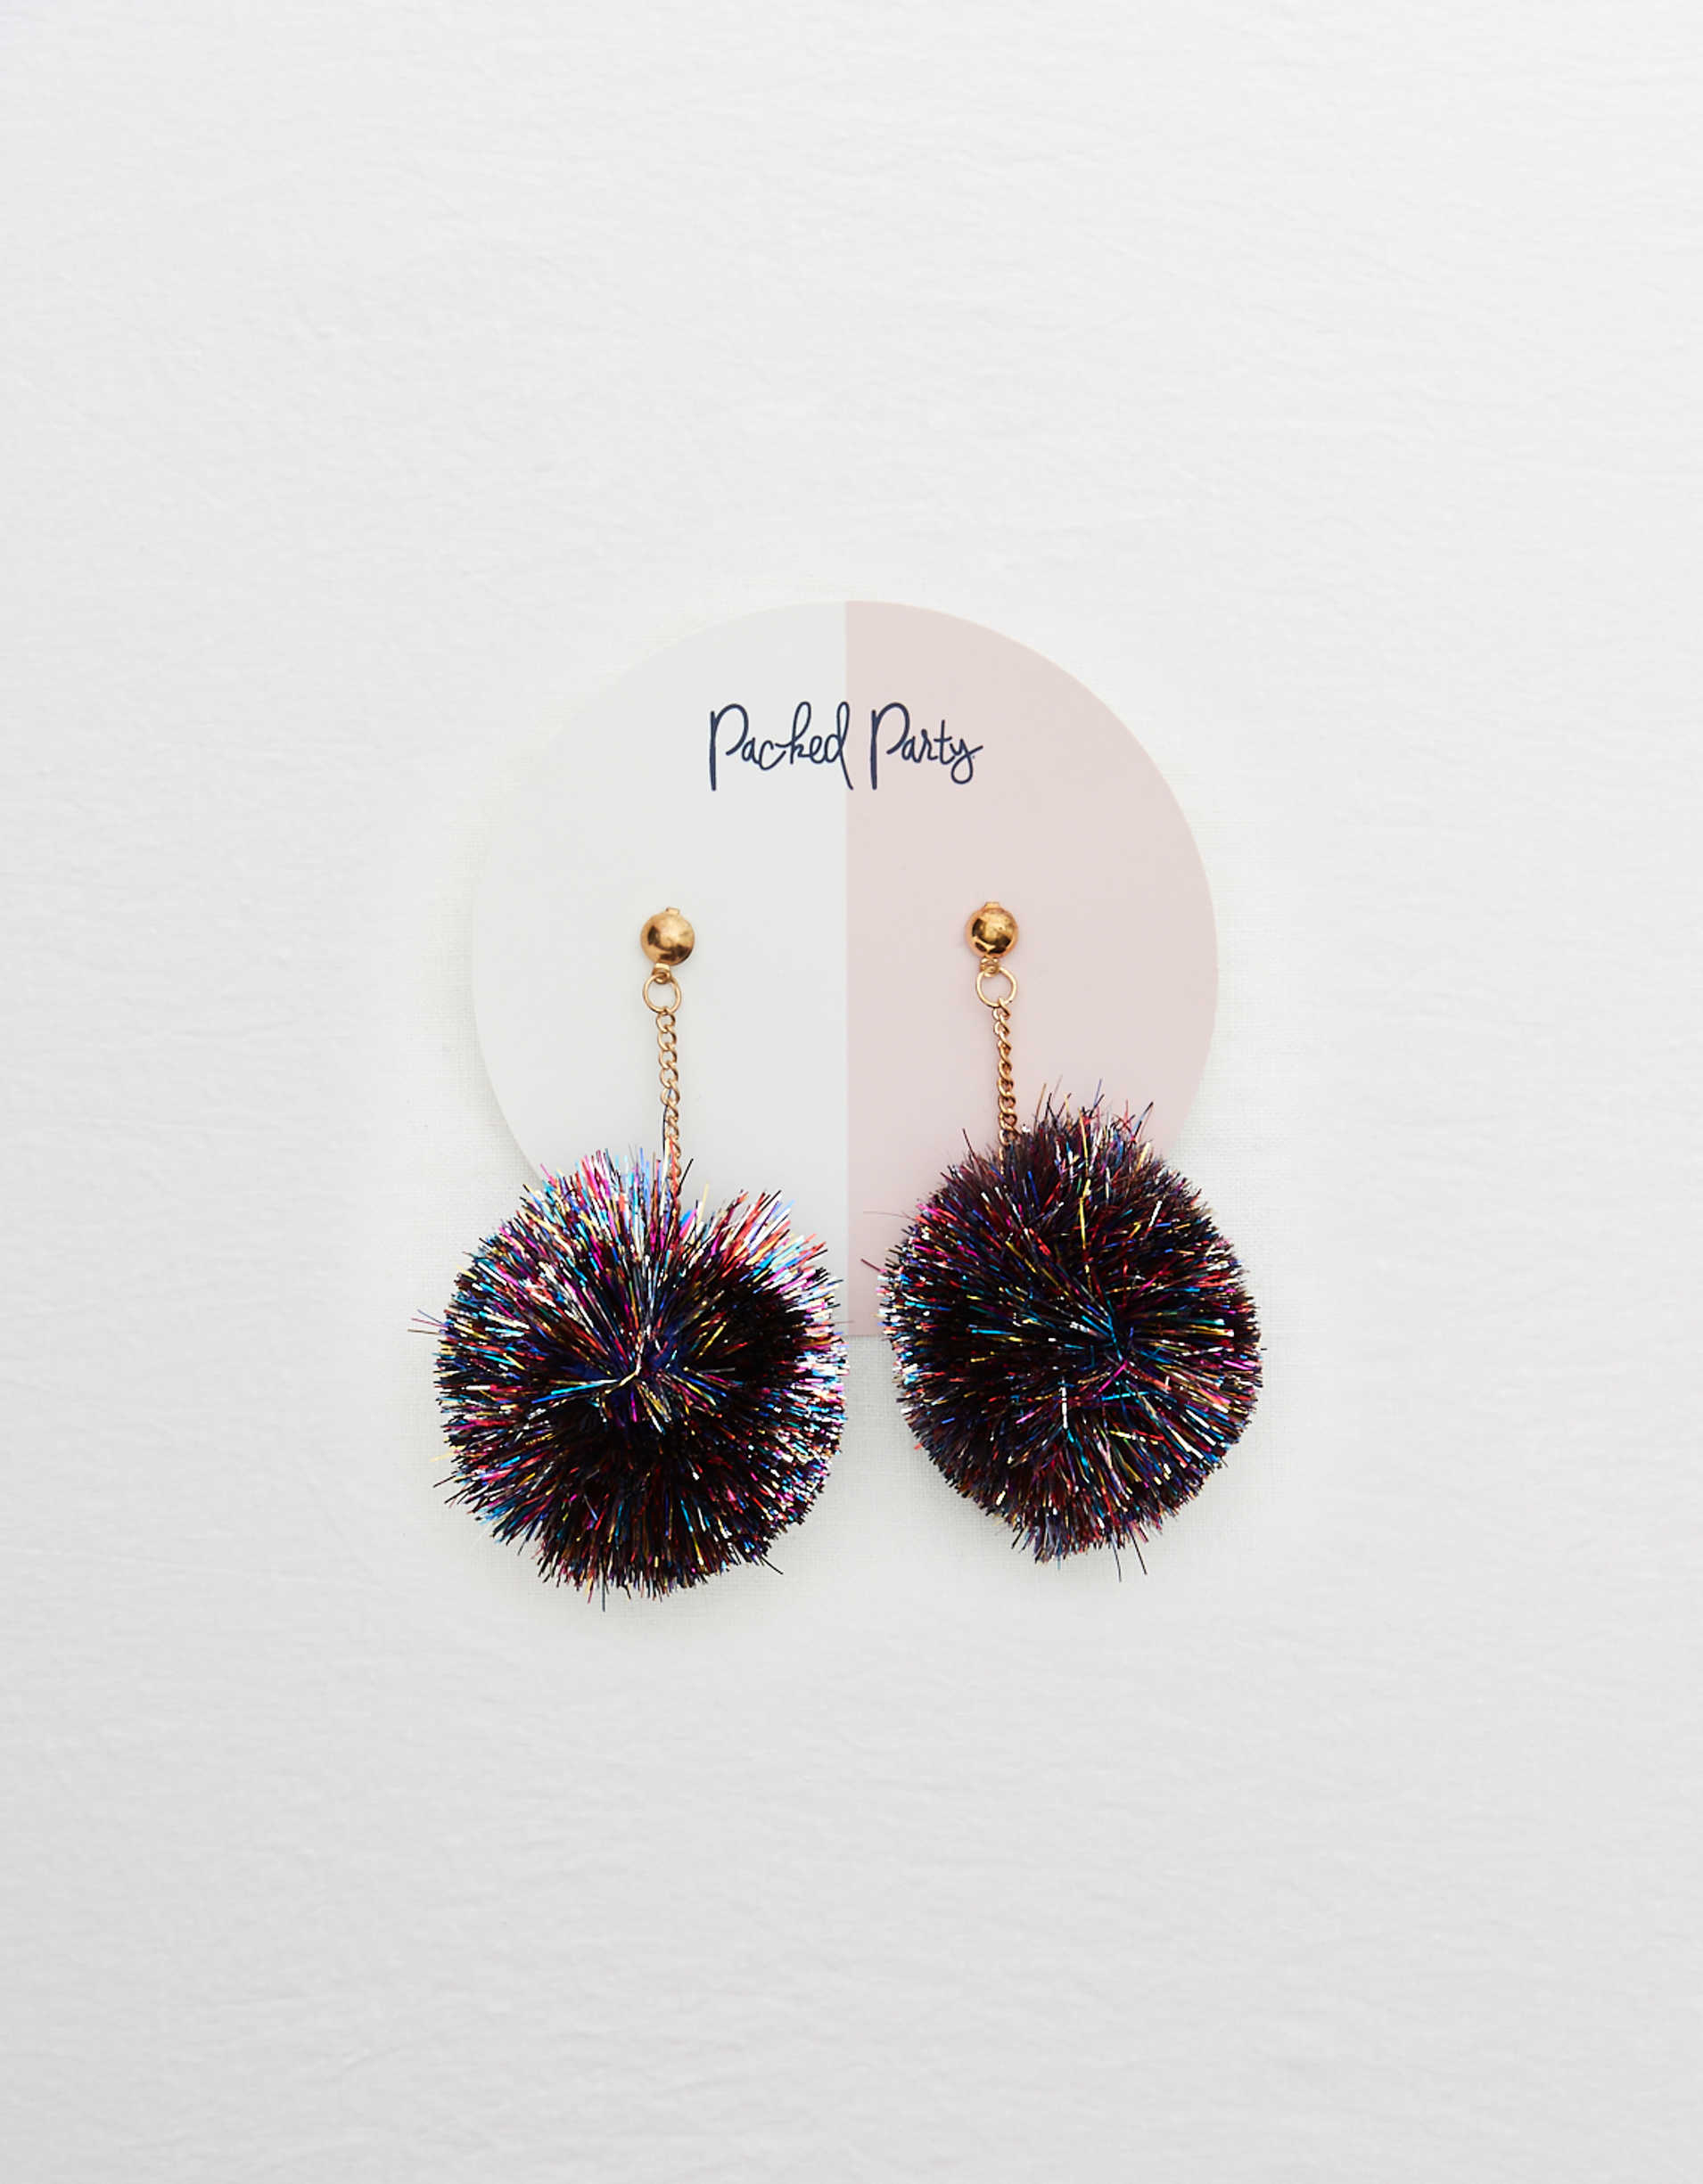 Packed Party Tinsel Pom Earrings